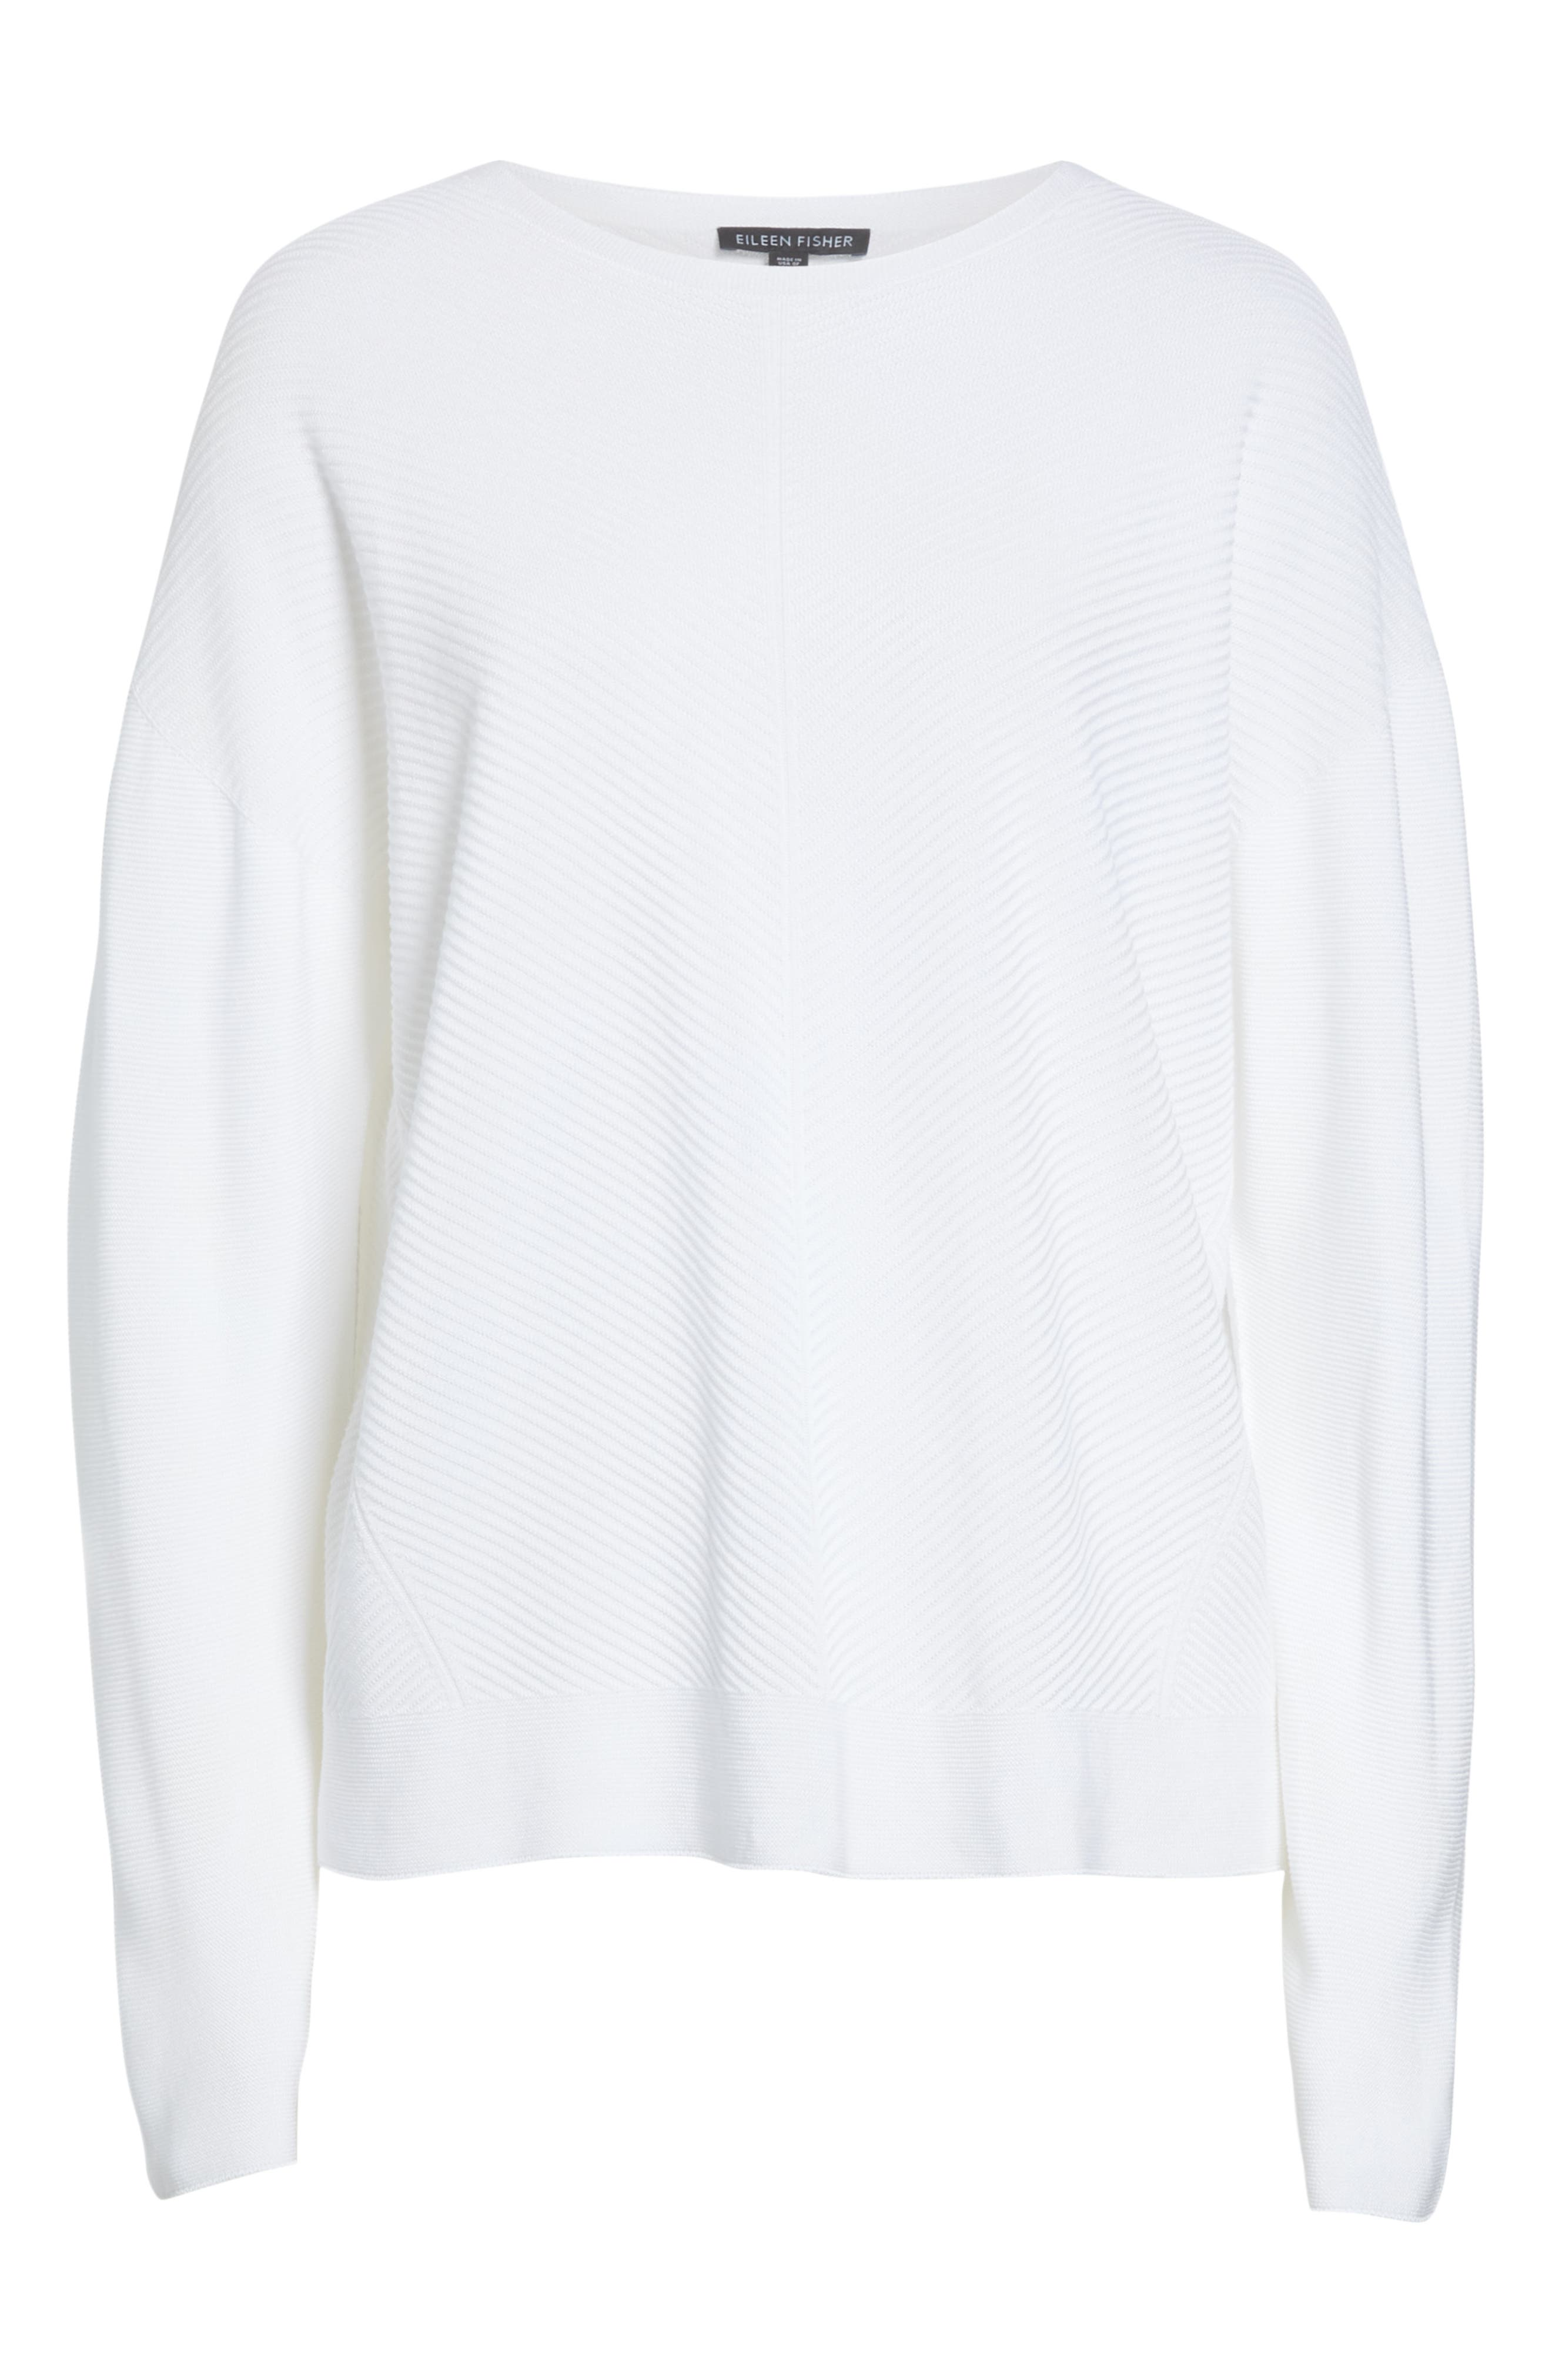 EILEEN FISHER, Round Neck Top, Alternate thumbnail 6, color, 103